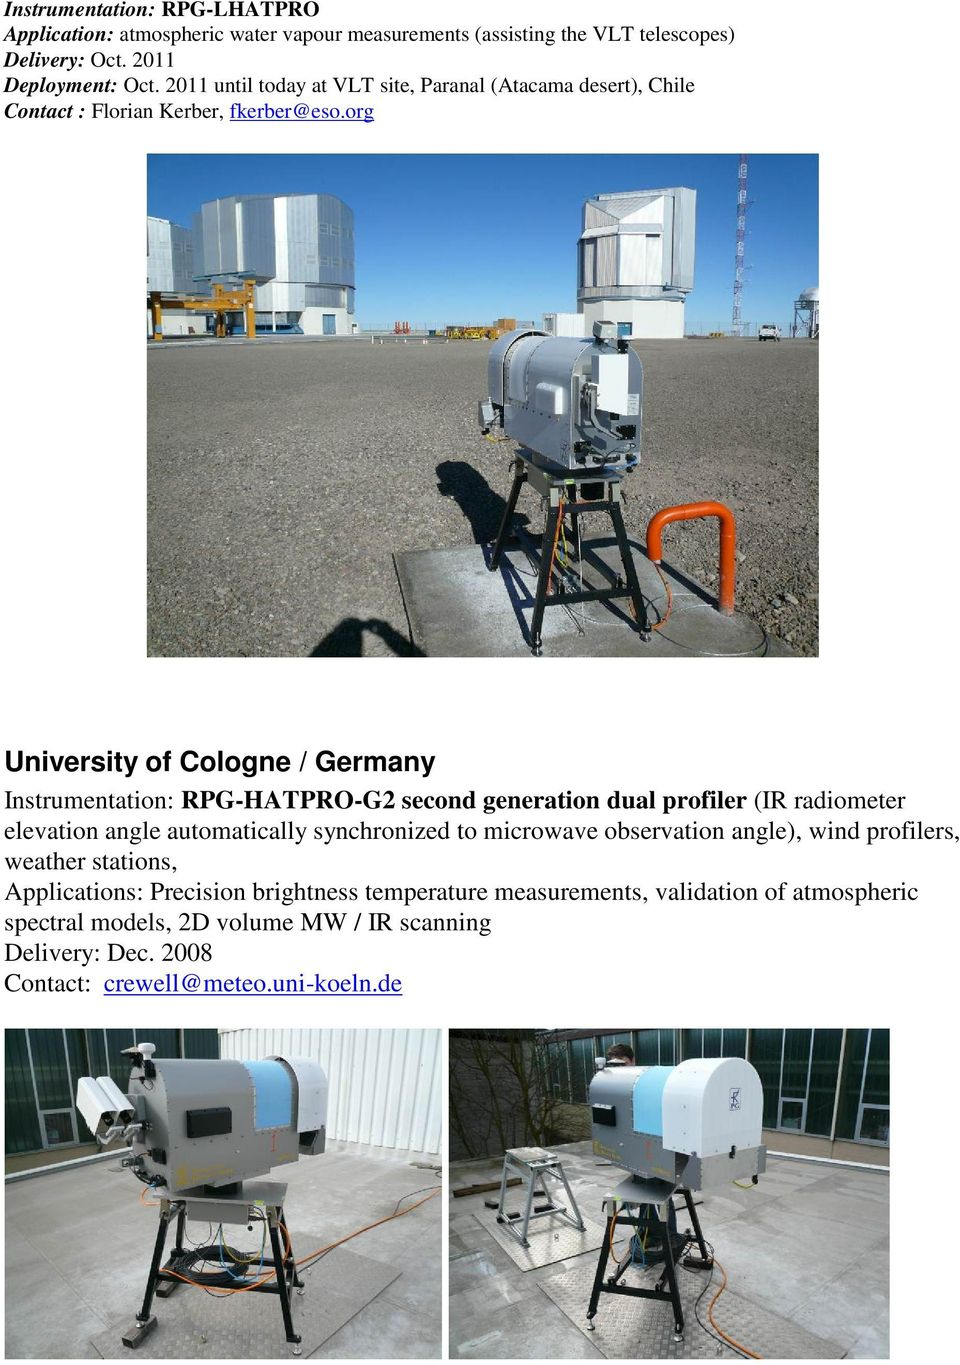 org University of Cologne / Germany Instrumentation: RPG-HATPRO-G2 second generation dual profiler (IR radiometer elevation angle automatically synchronized to